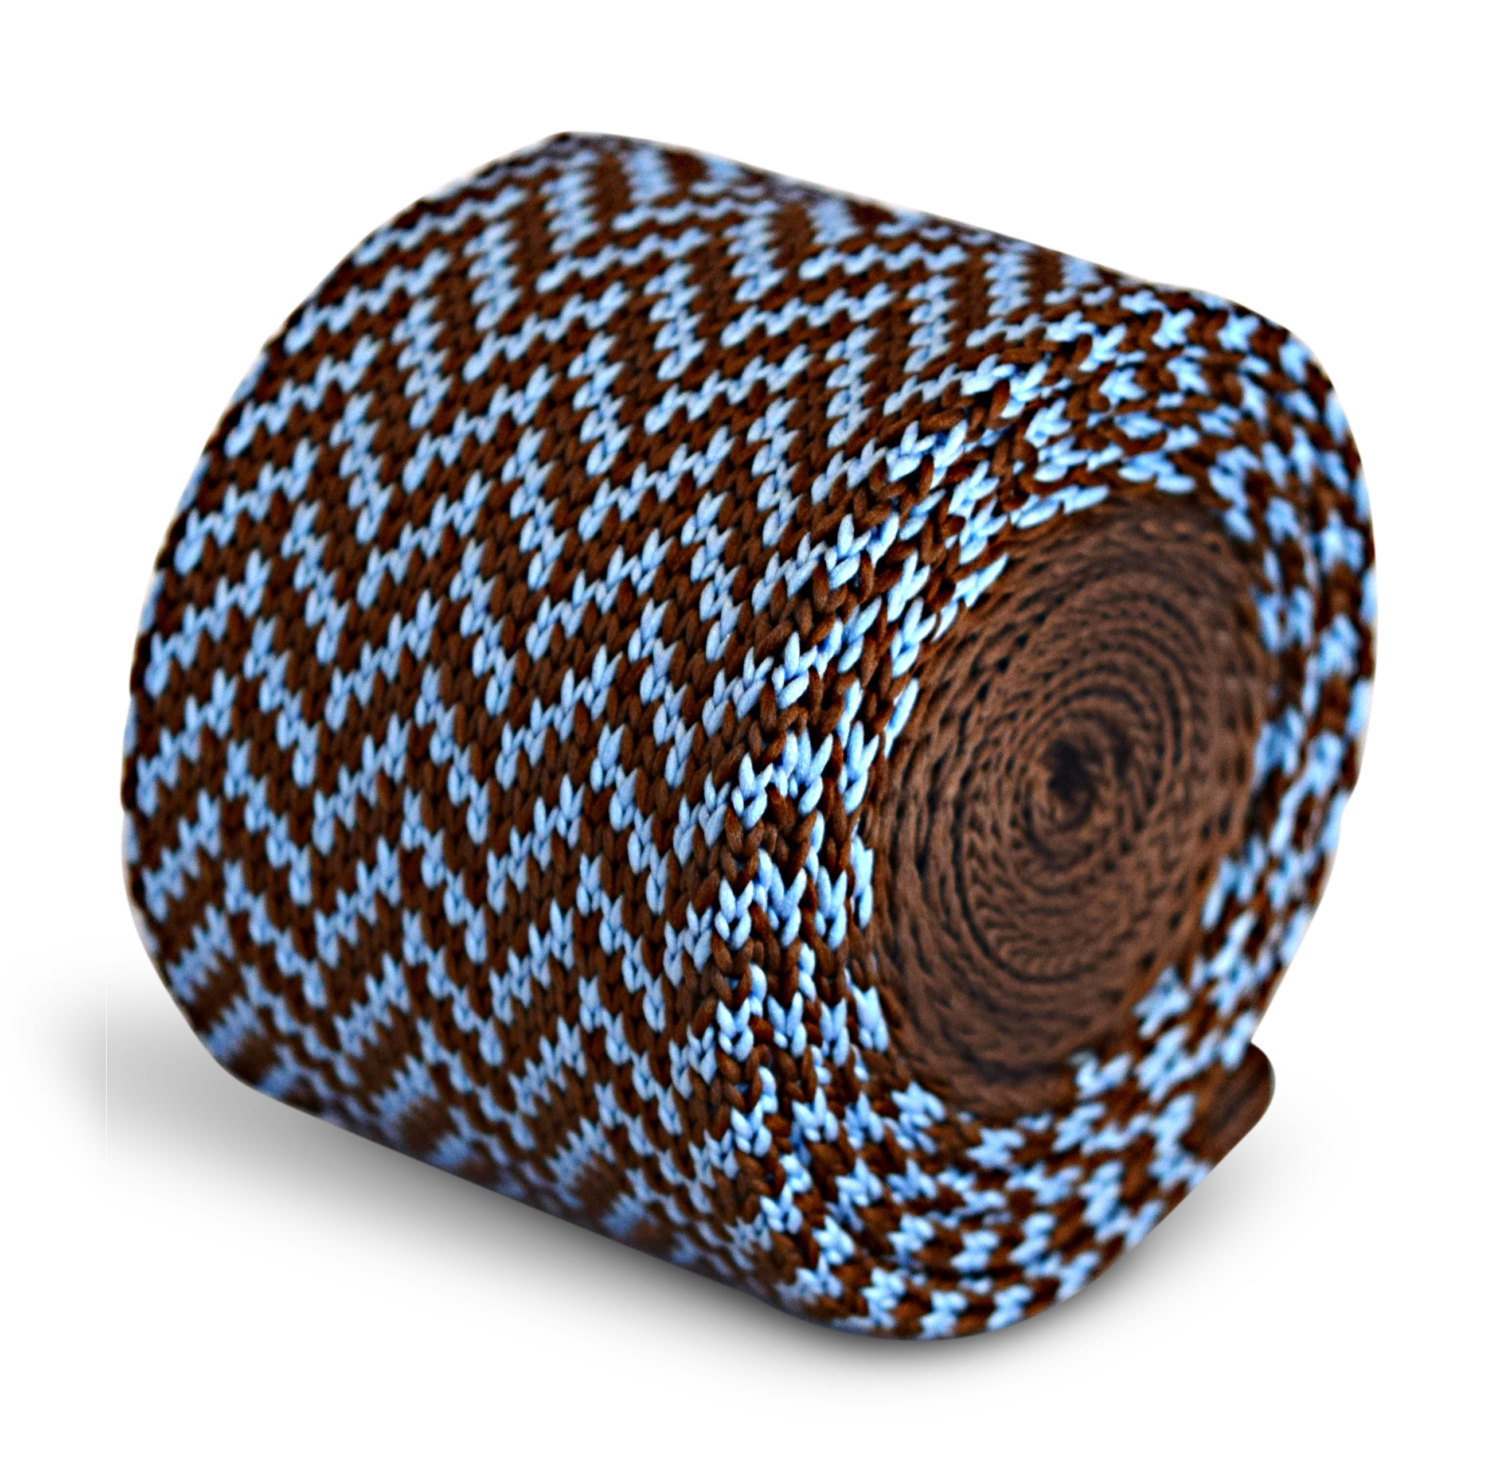 chocolate brown and light blue herringbone knitted skinny tie by Frederick Thoma